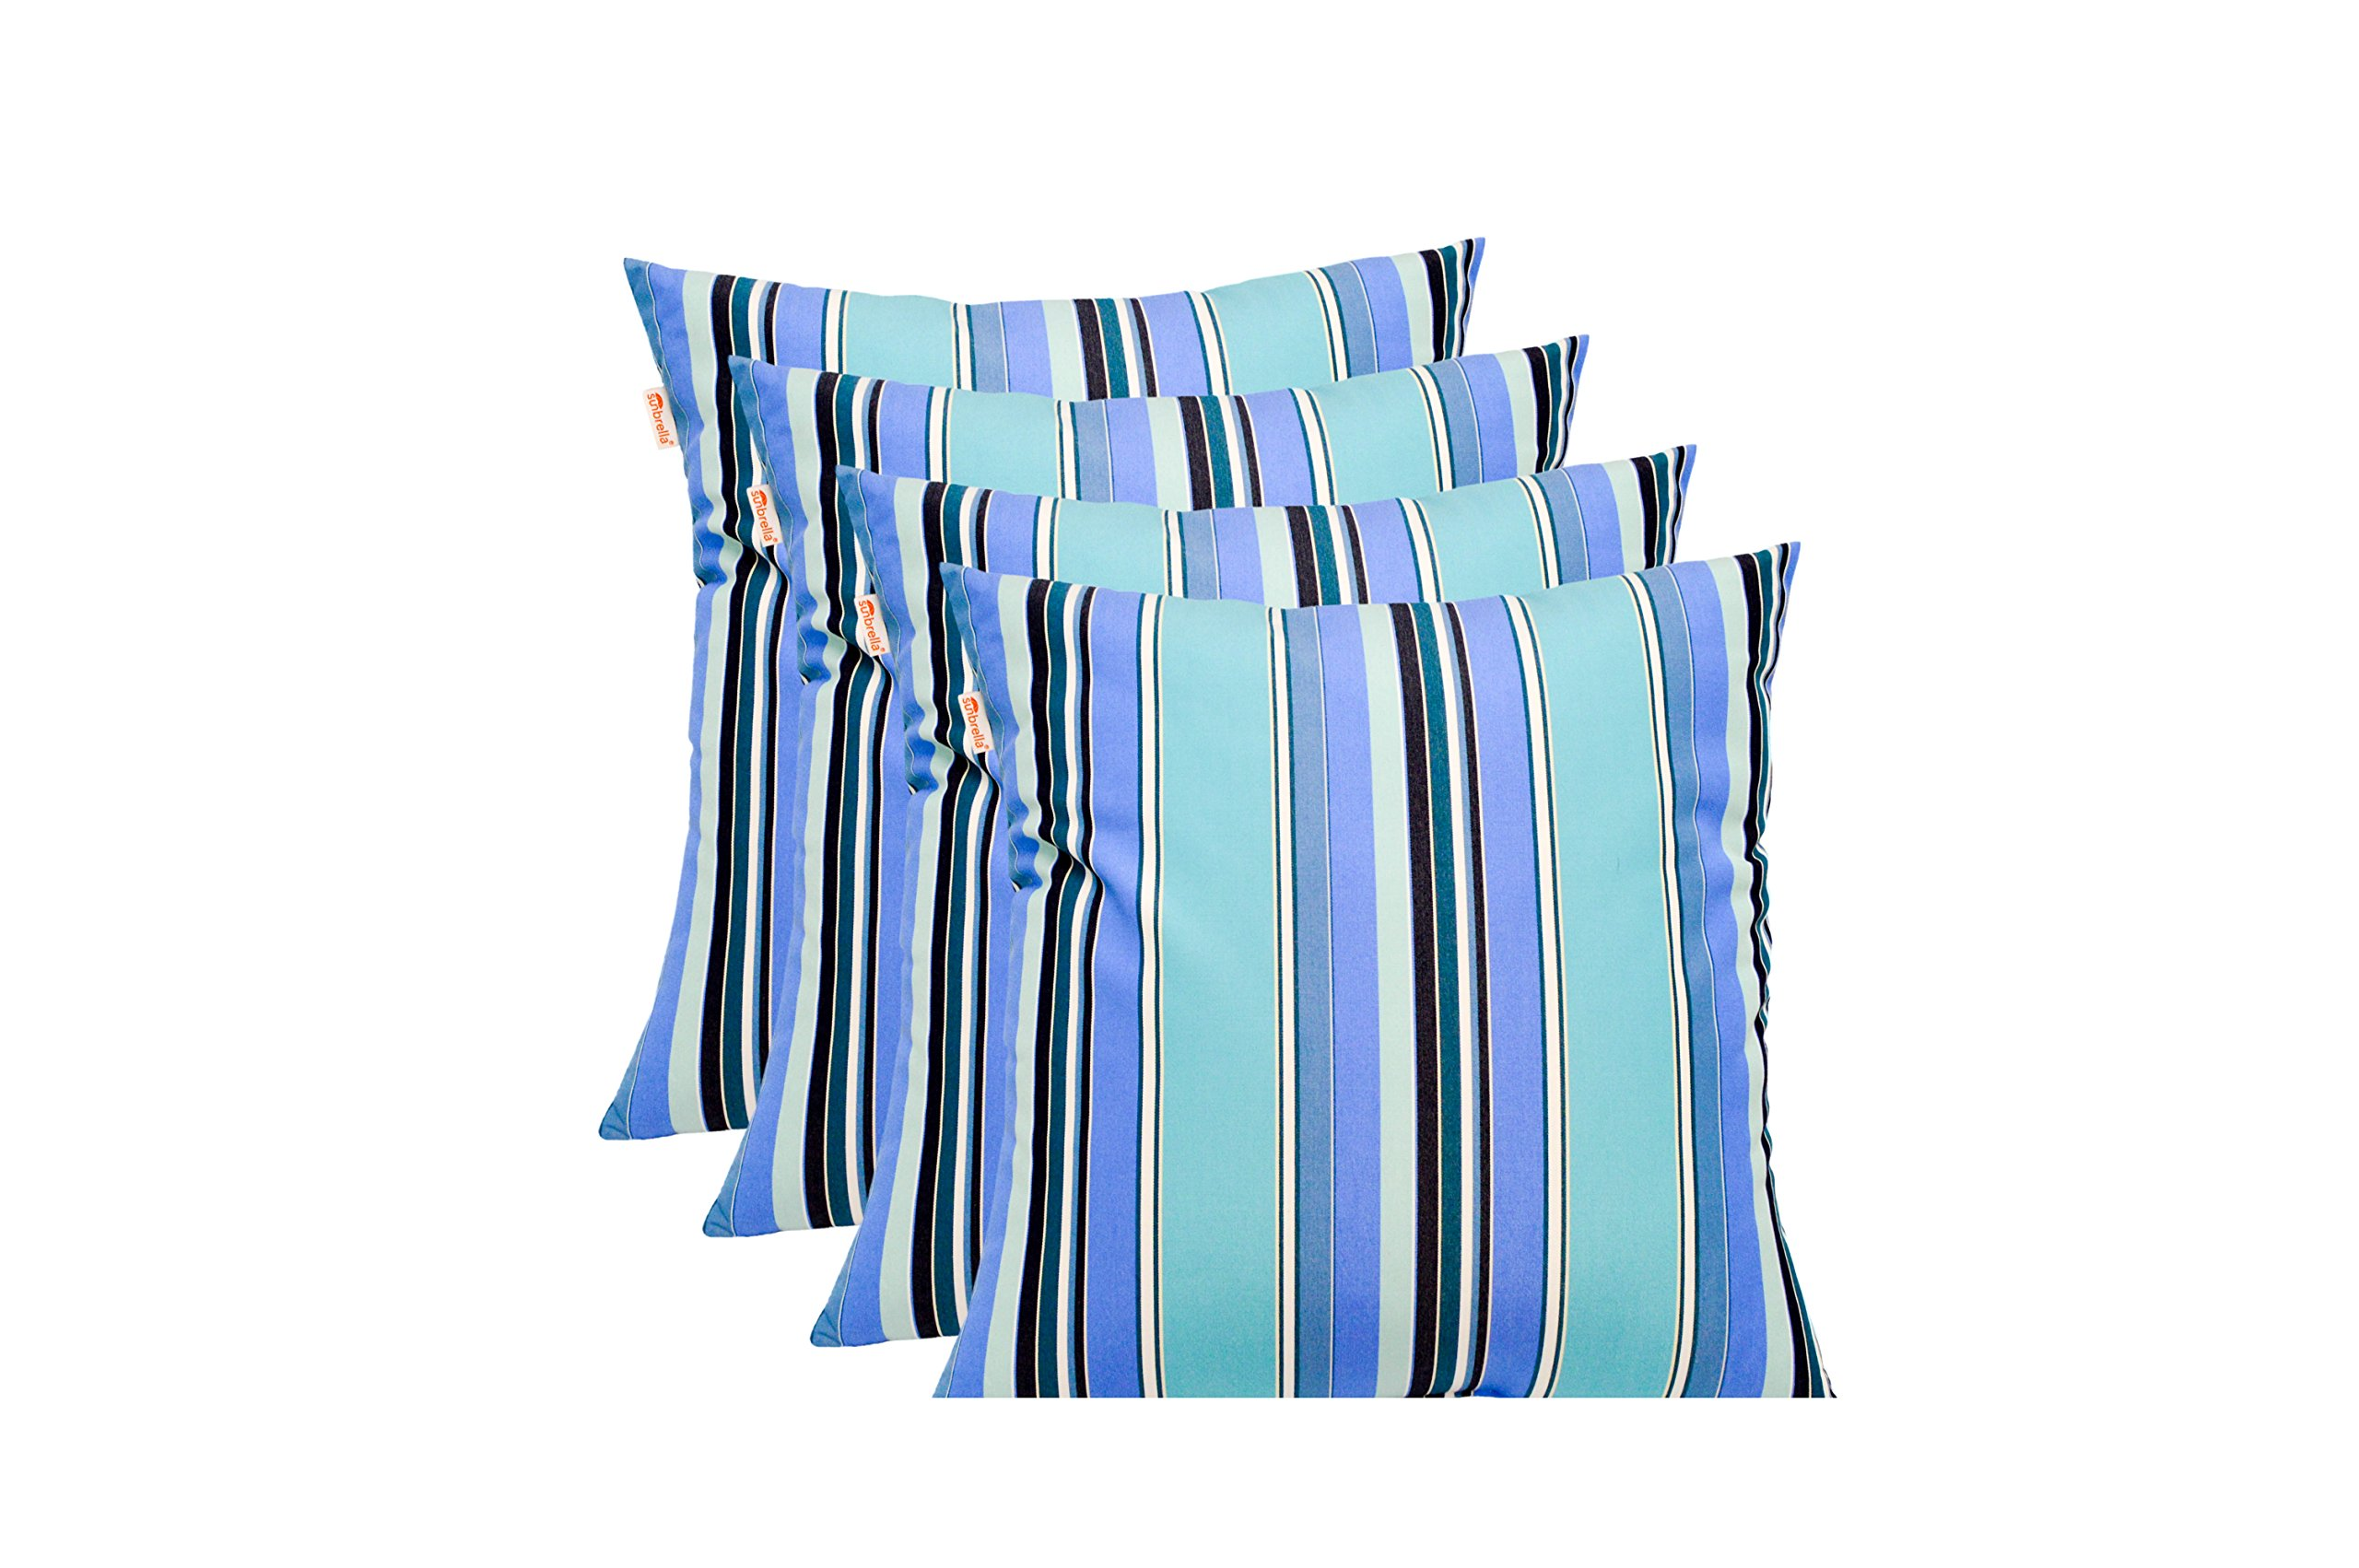 Resort Spa Home Decor Set of 4 - Sunbrella Dolce Oasis - Blue Teal Navy White Stripe - In/Outdoor Square Throw/Toss Pillows (20'' x 20'') 1101